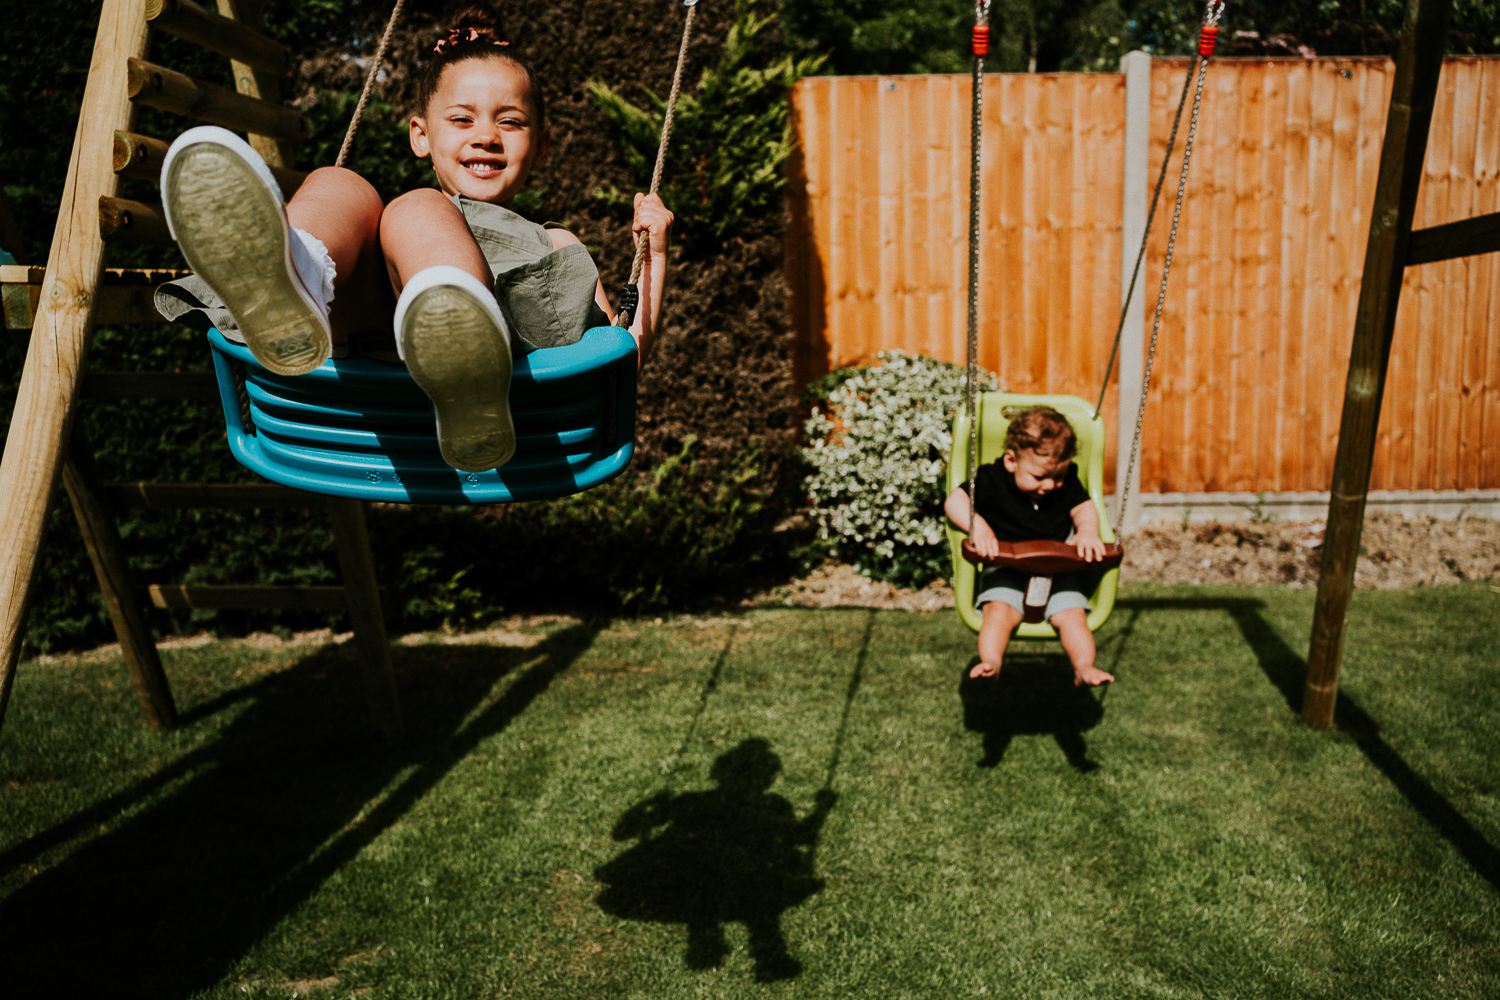 London family photography 2020 siblings on swings in garden in the sunshine